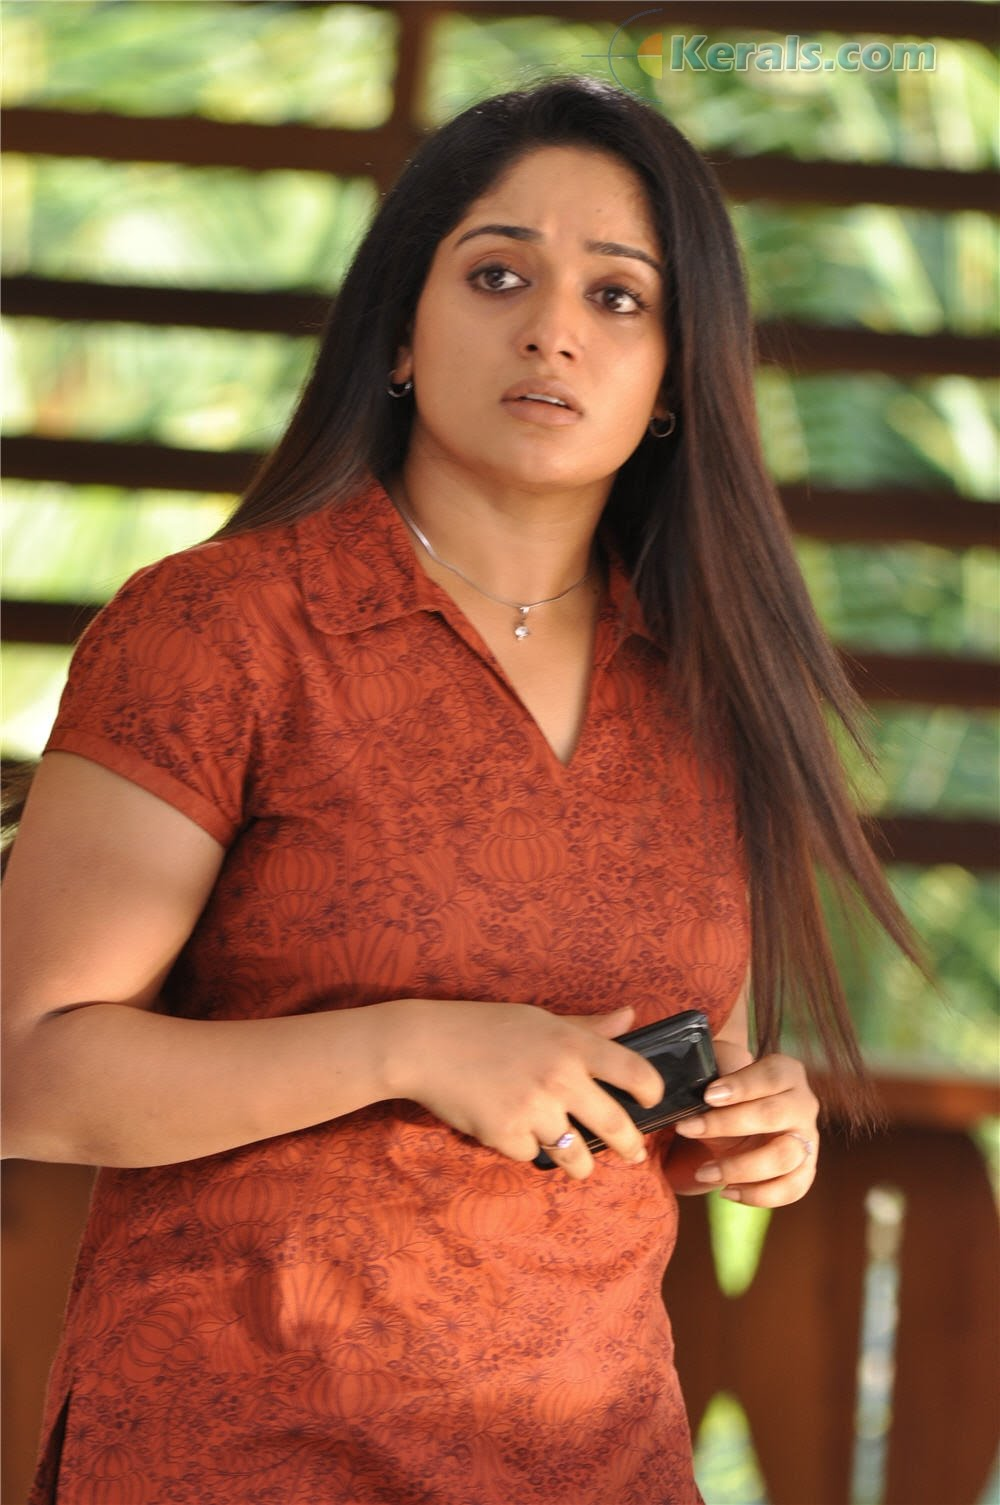 from Daxton busty boobs kavya madhavan sex